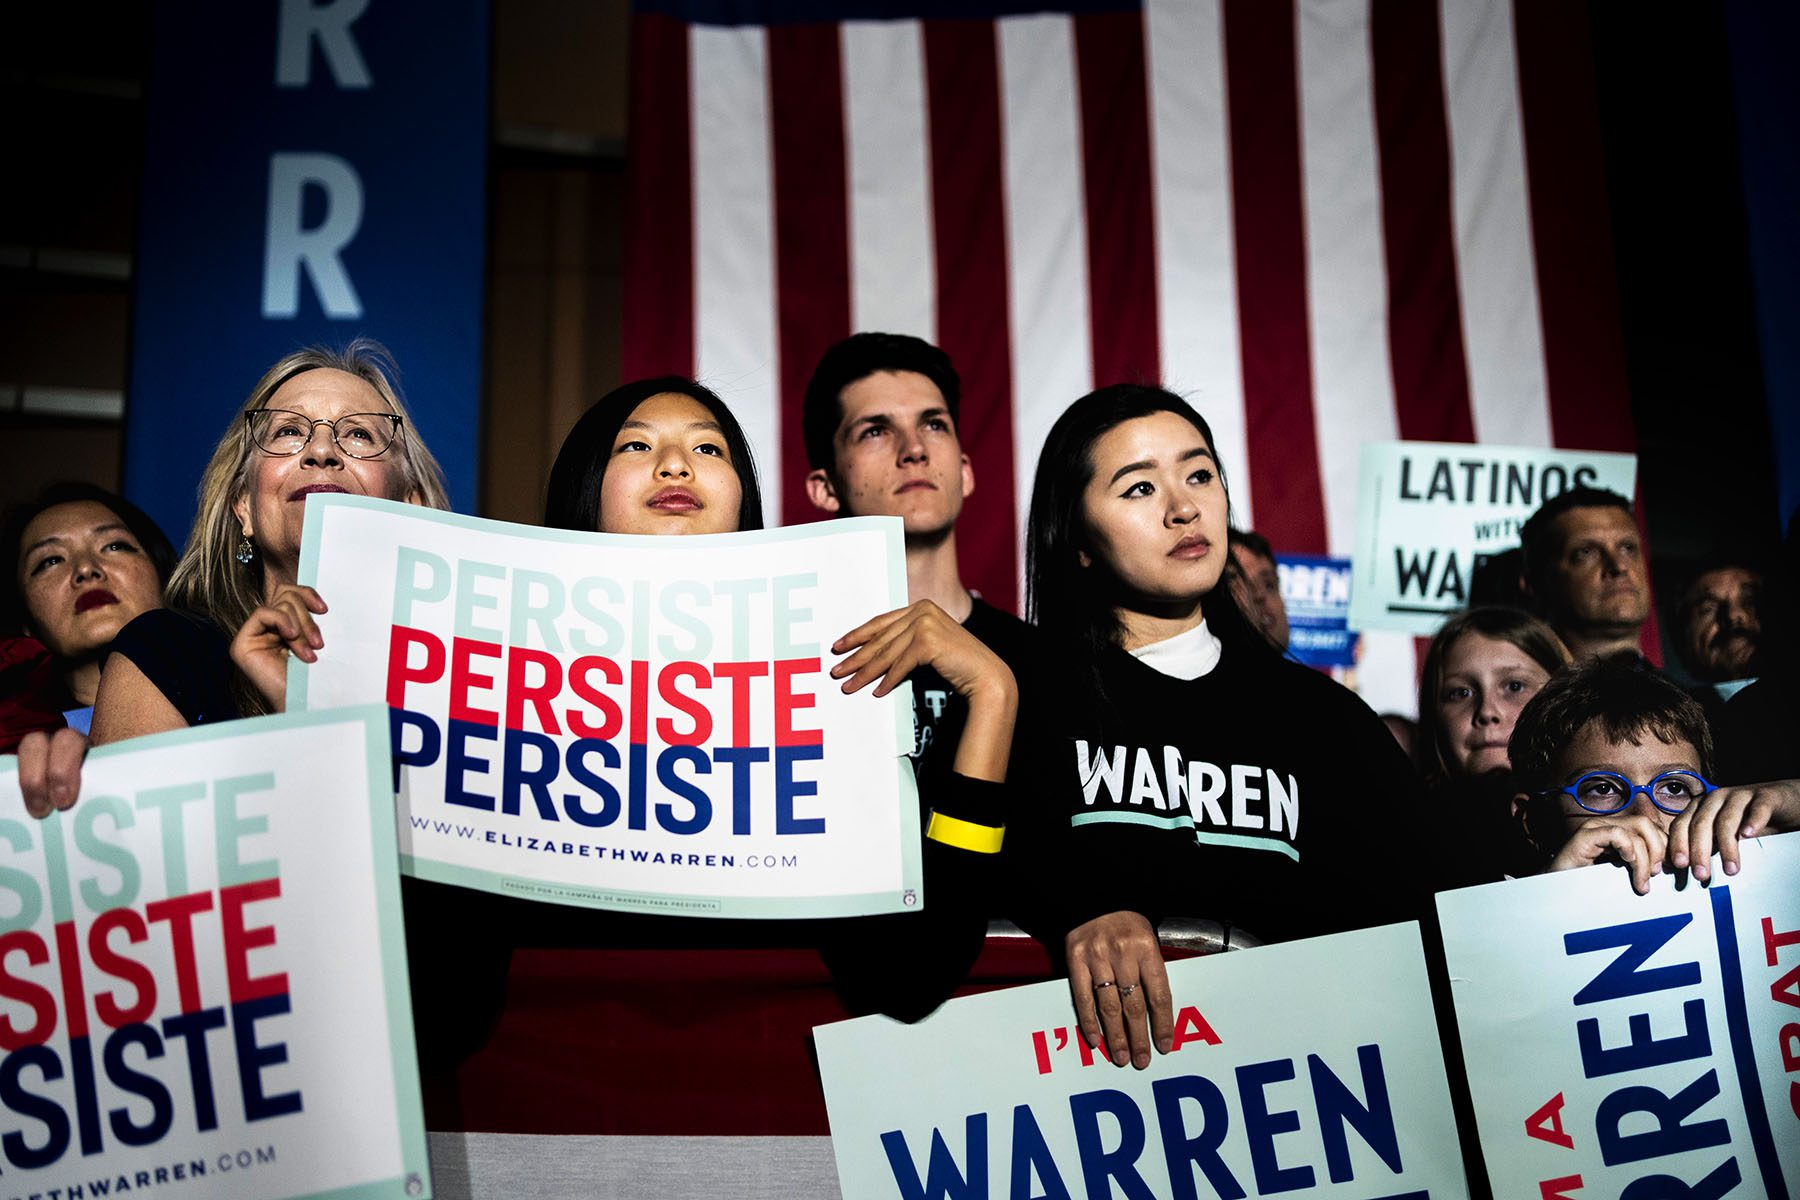 Warren supporters holding signs that say